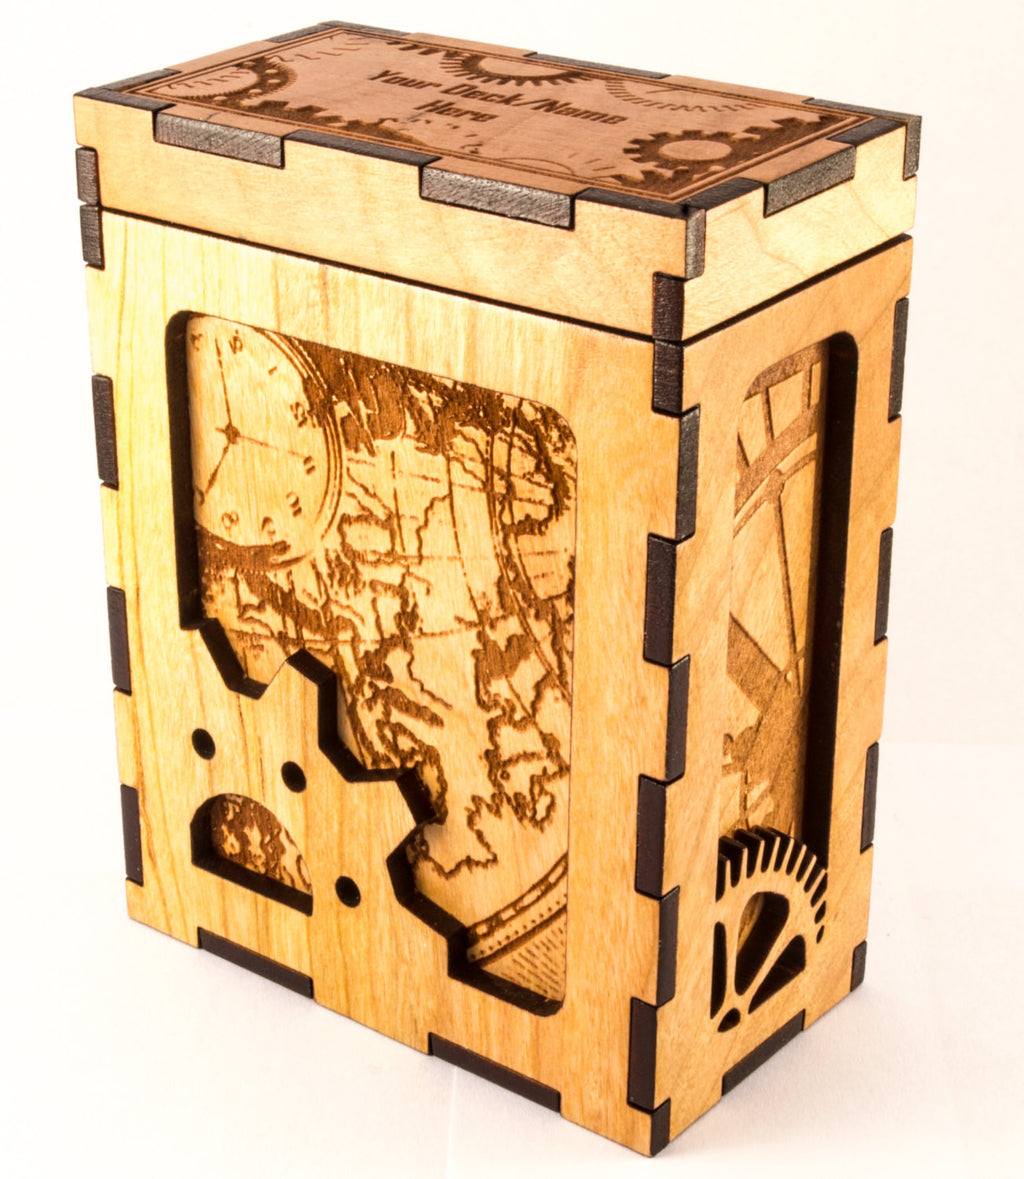 Wooden Steampunk Deck Box Back and Side